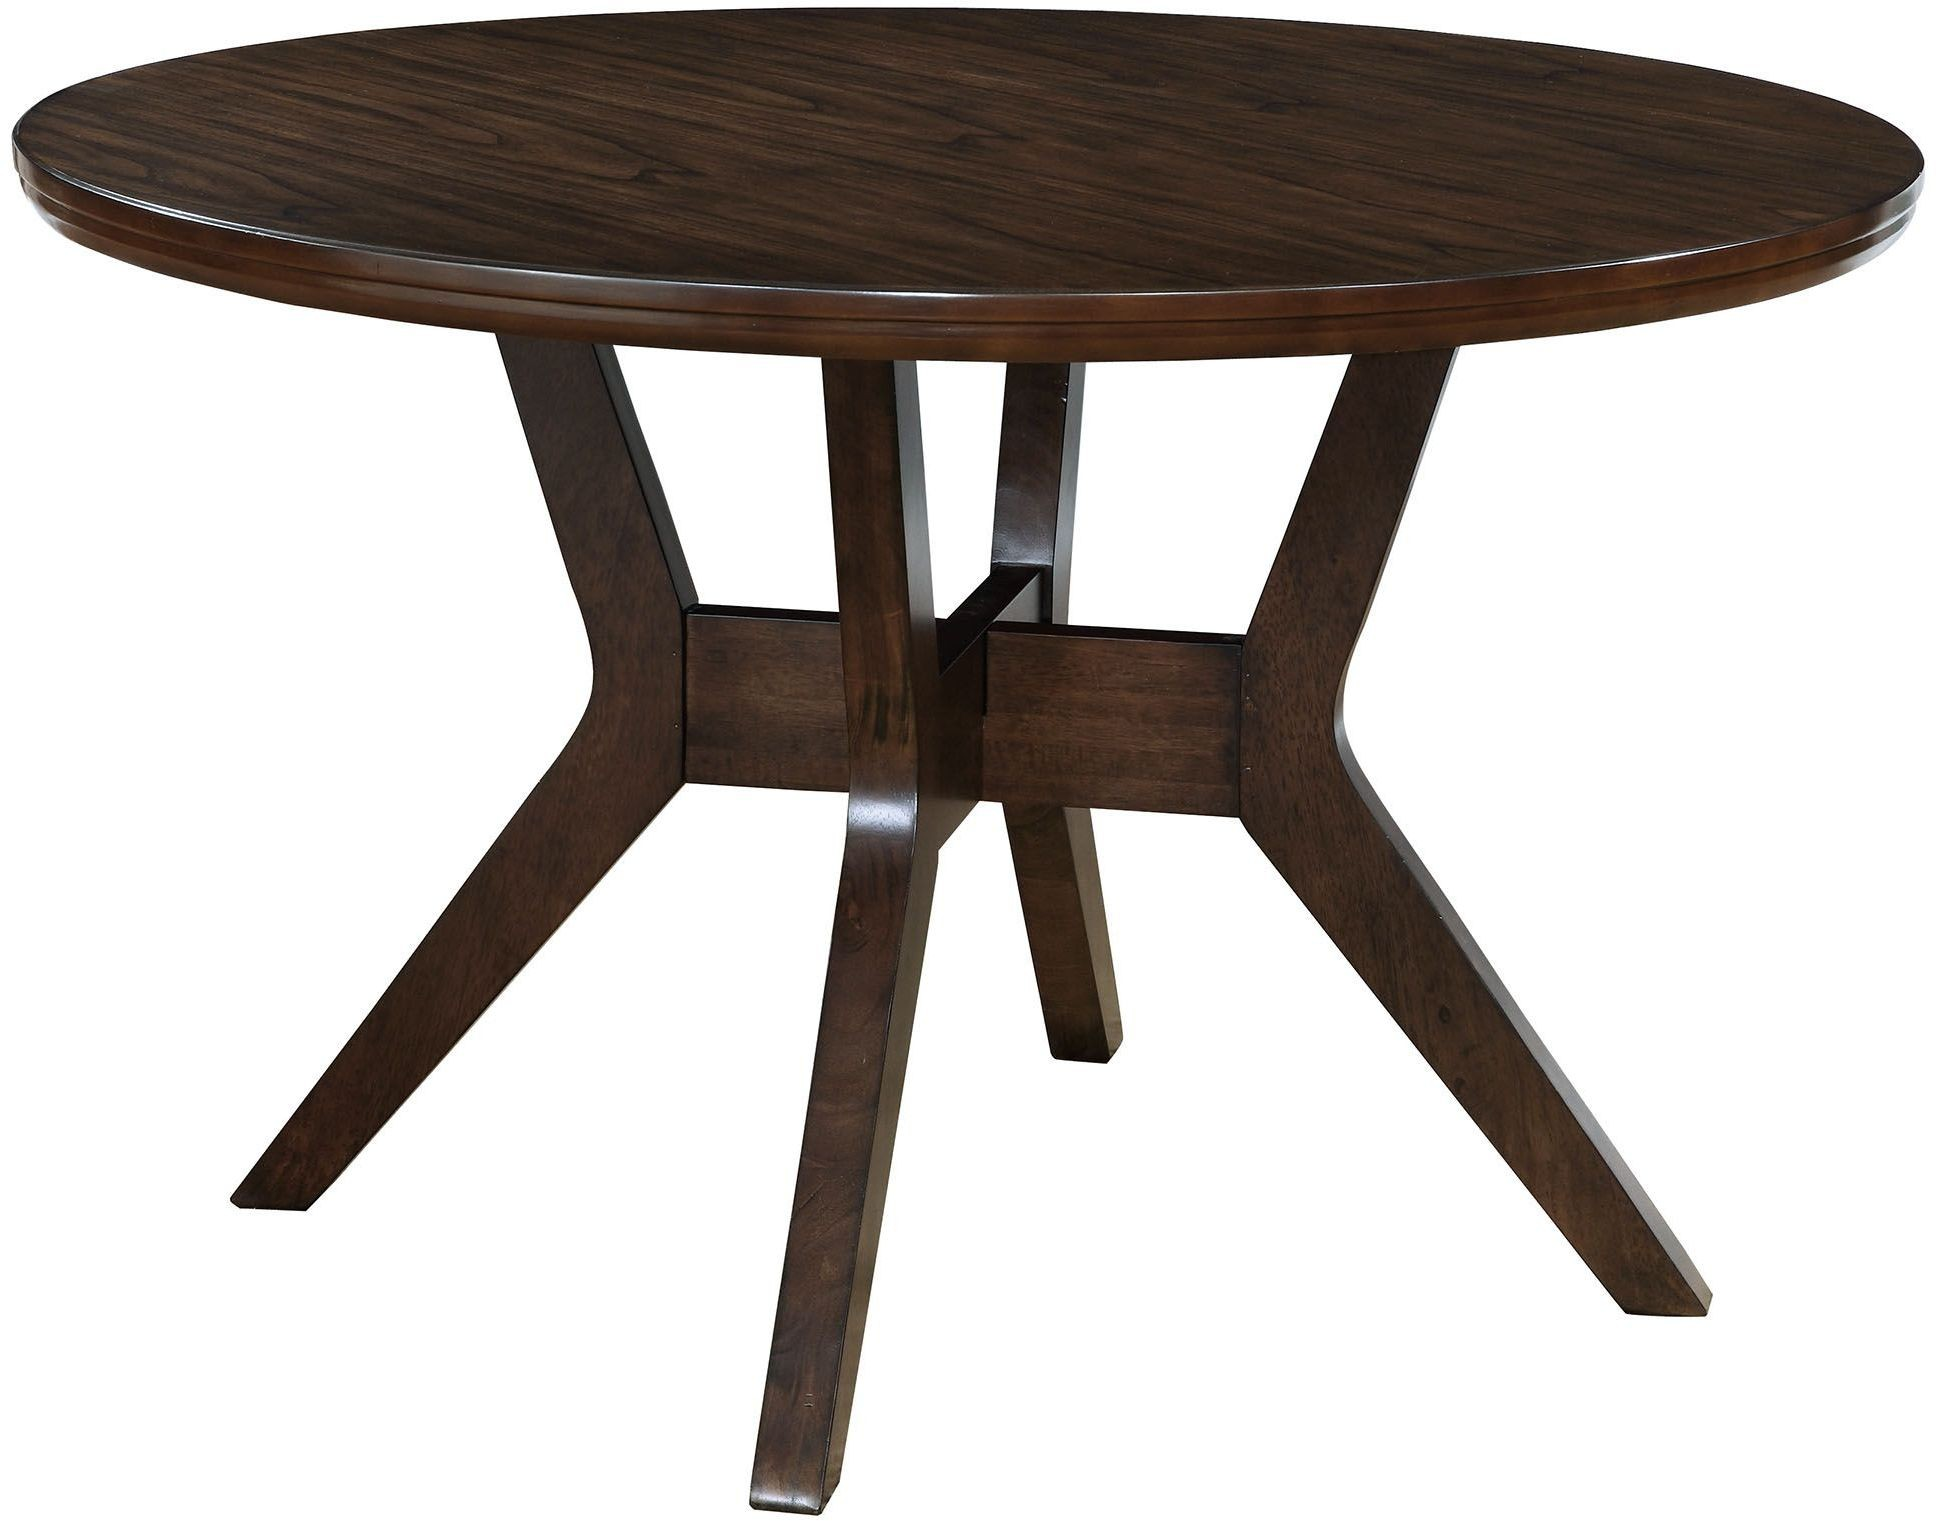 abelone walnut round dining table from furniture of america coleman furniture. Black Bedroom Furniture Sets. Home Design Ideas